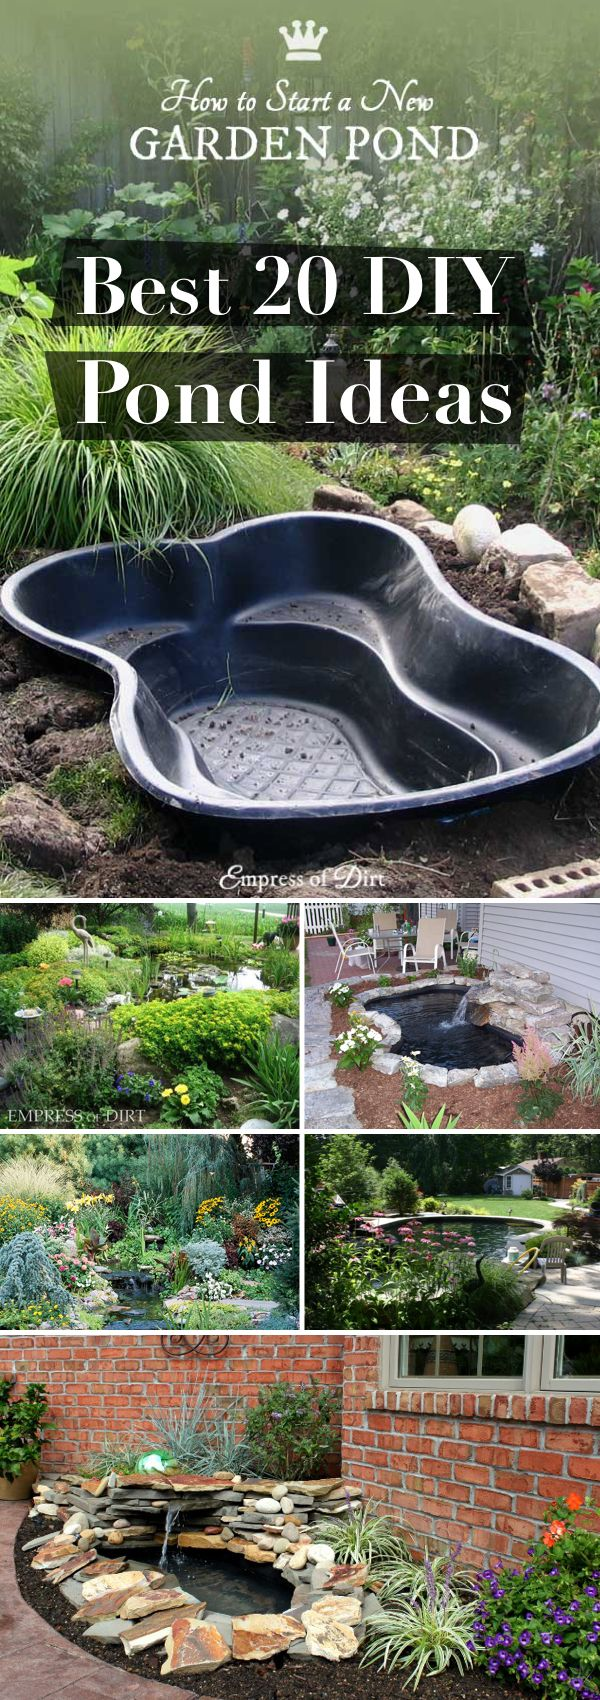 20 innovative diy pond ideas letting you build a water for Still pond garden design